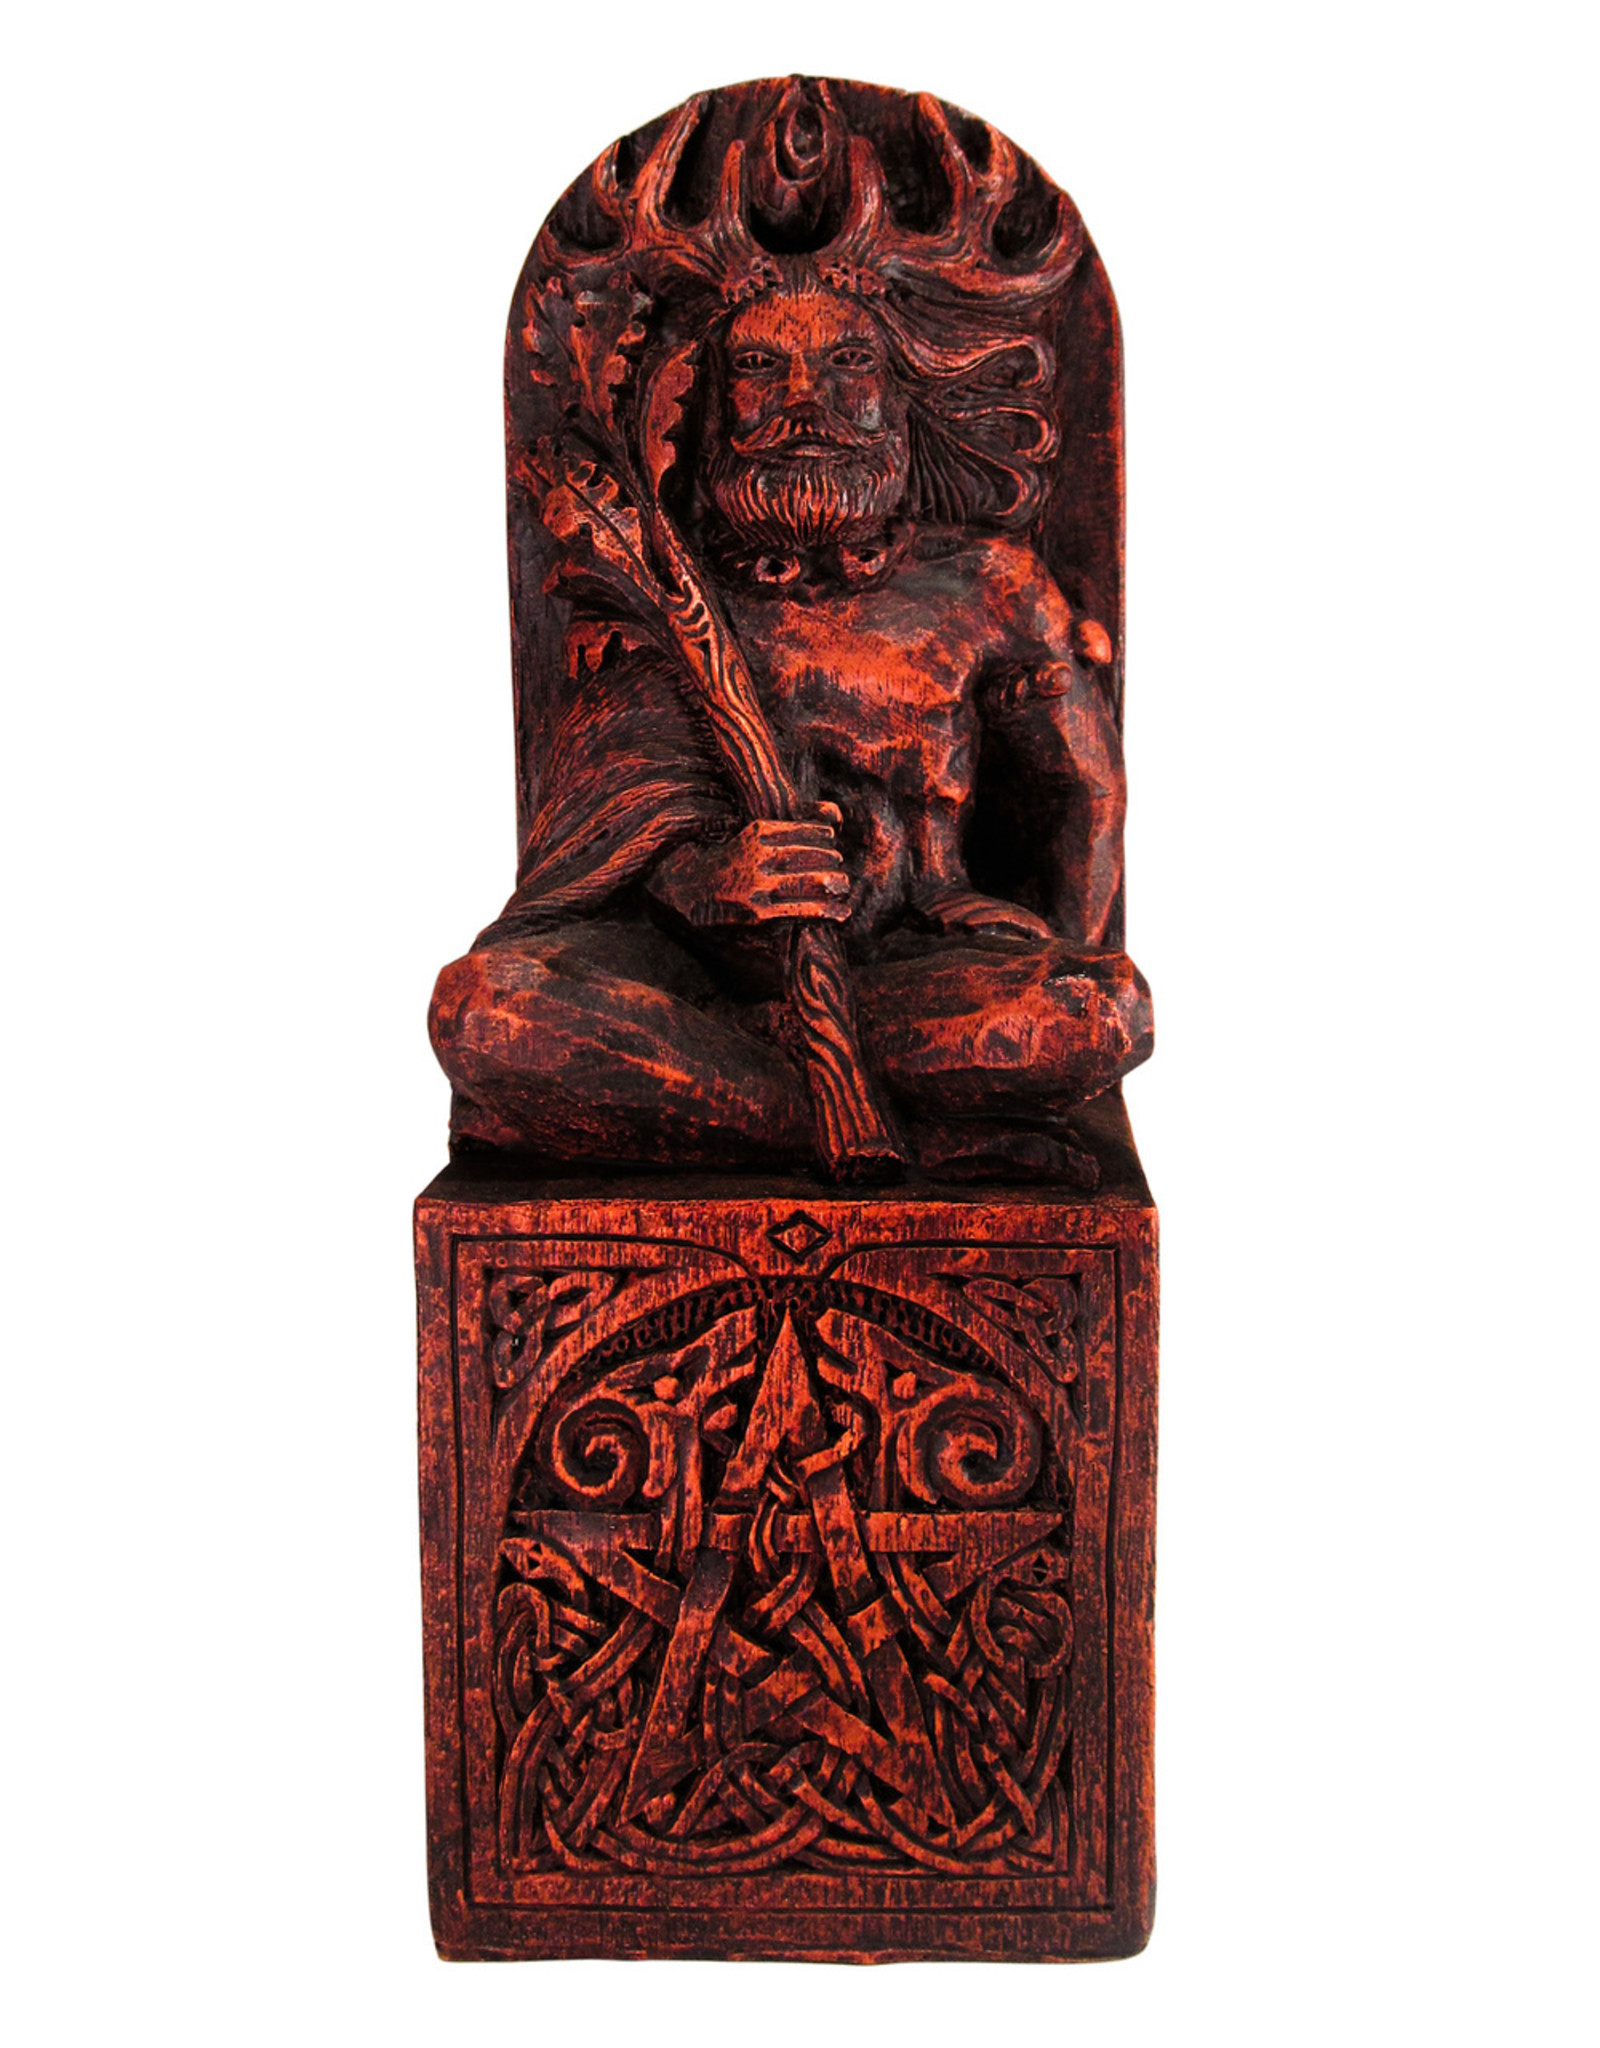 Seated God Statue in Wood Finish